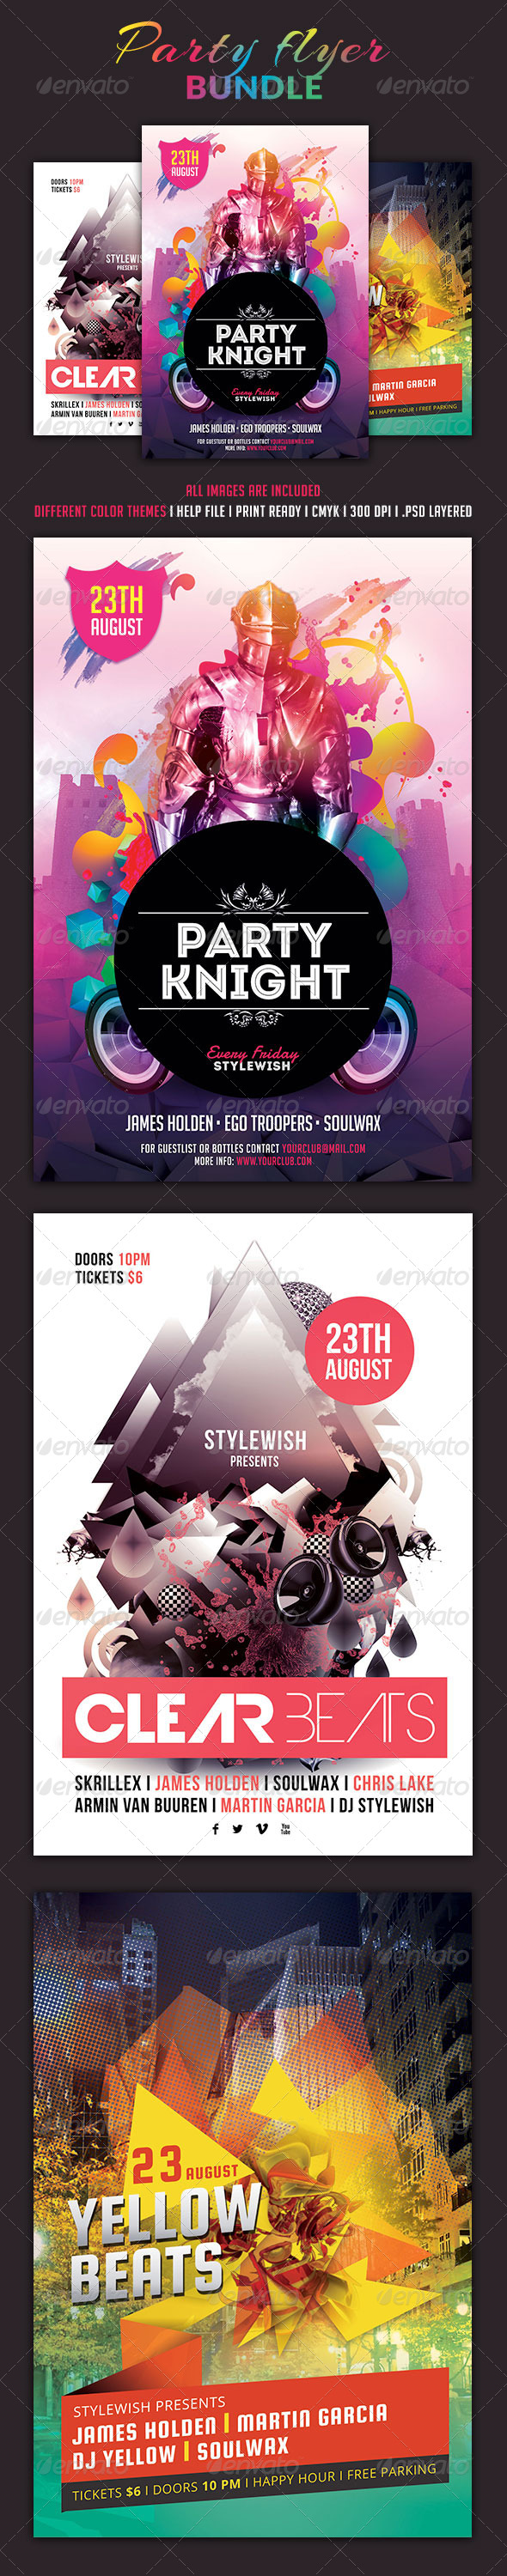 Party Flyer Bundle Vol.2 - Clubs & Parties Events